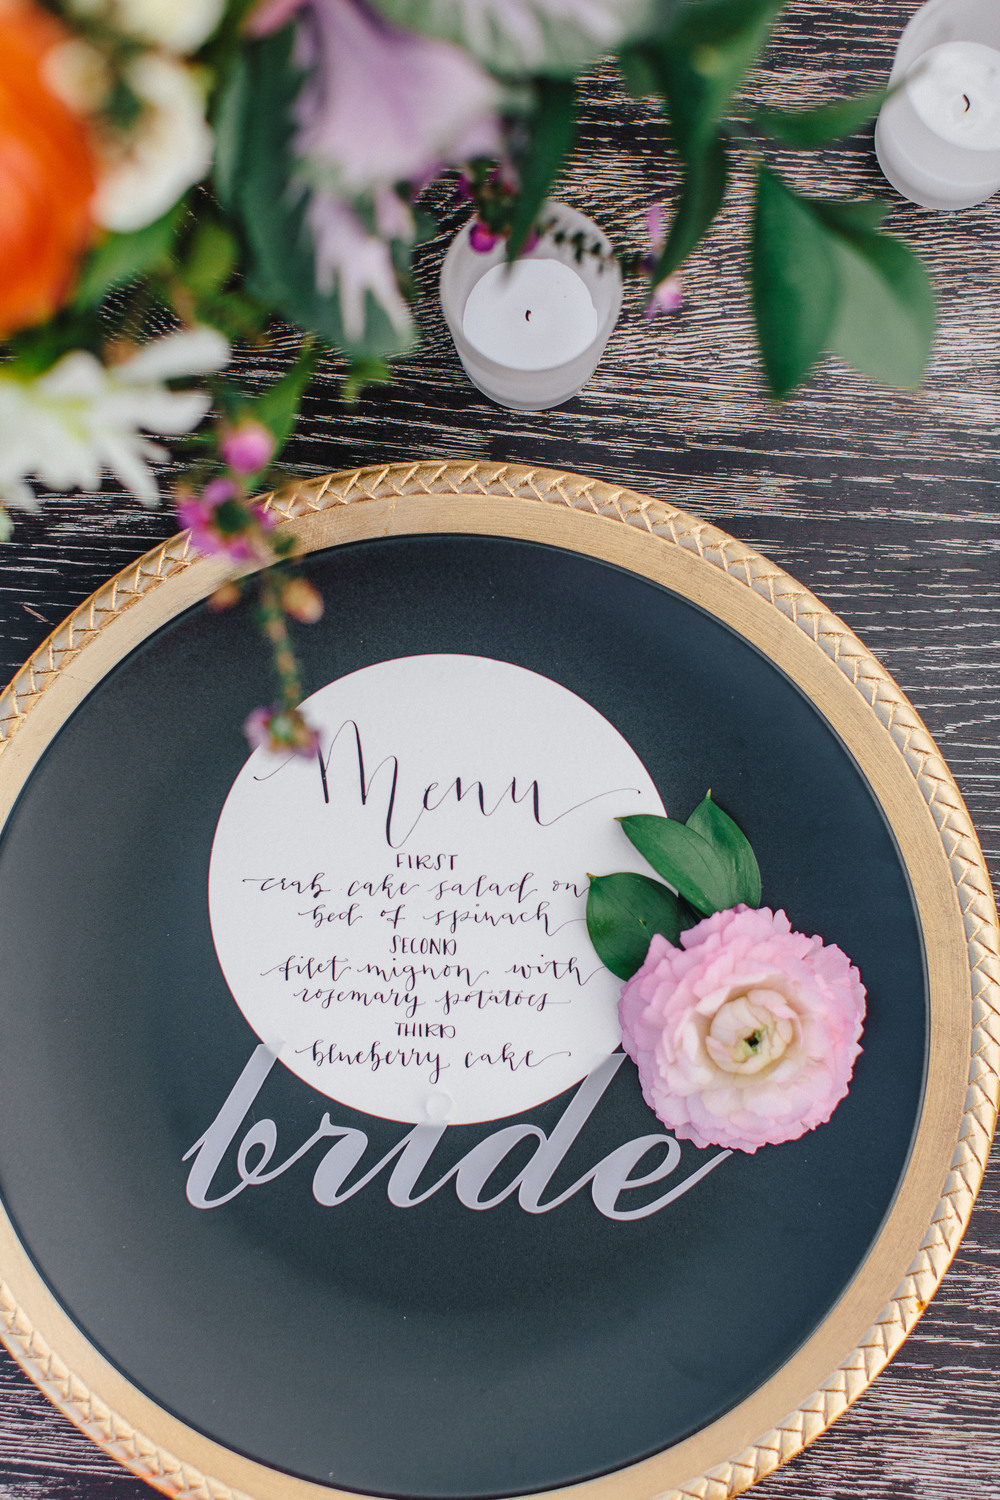 Maxit Flower Design; Vineyard Bridal Styled Shoot 0161_Kristen Curette Photography.jpg